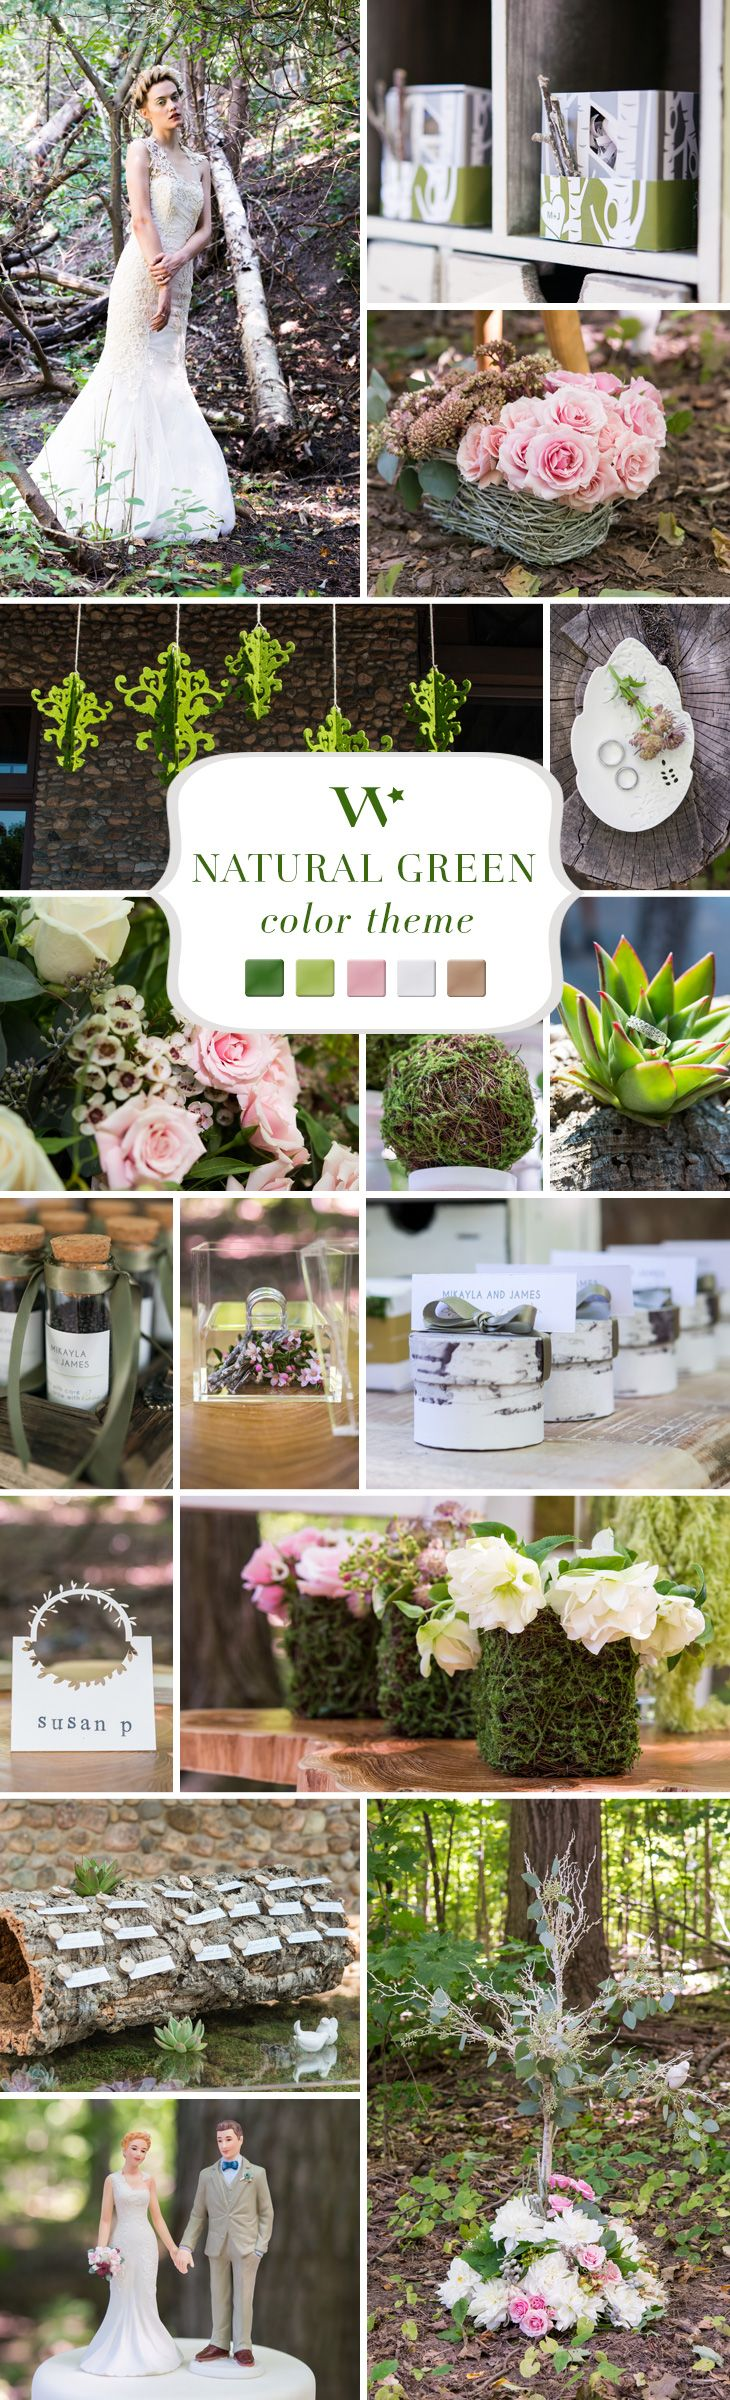 Find your color inspiration here for a natural green wedding. Combine soft pinks with natural woodland colors to get this incredible look.